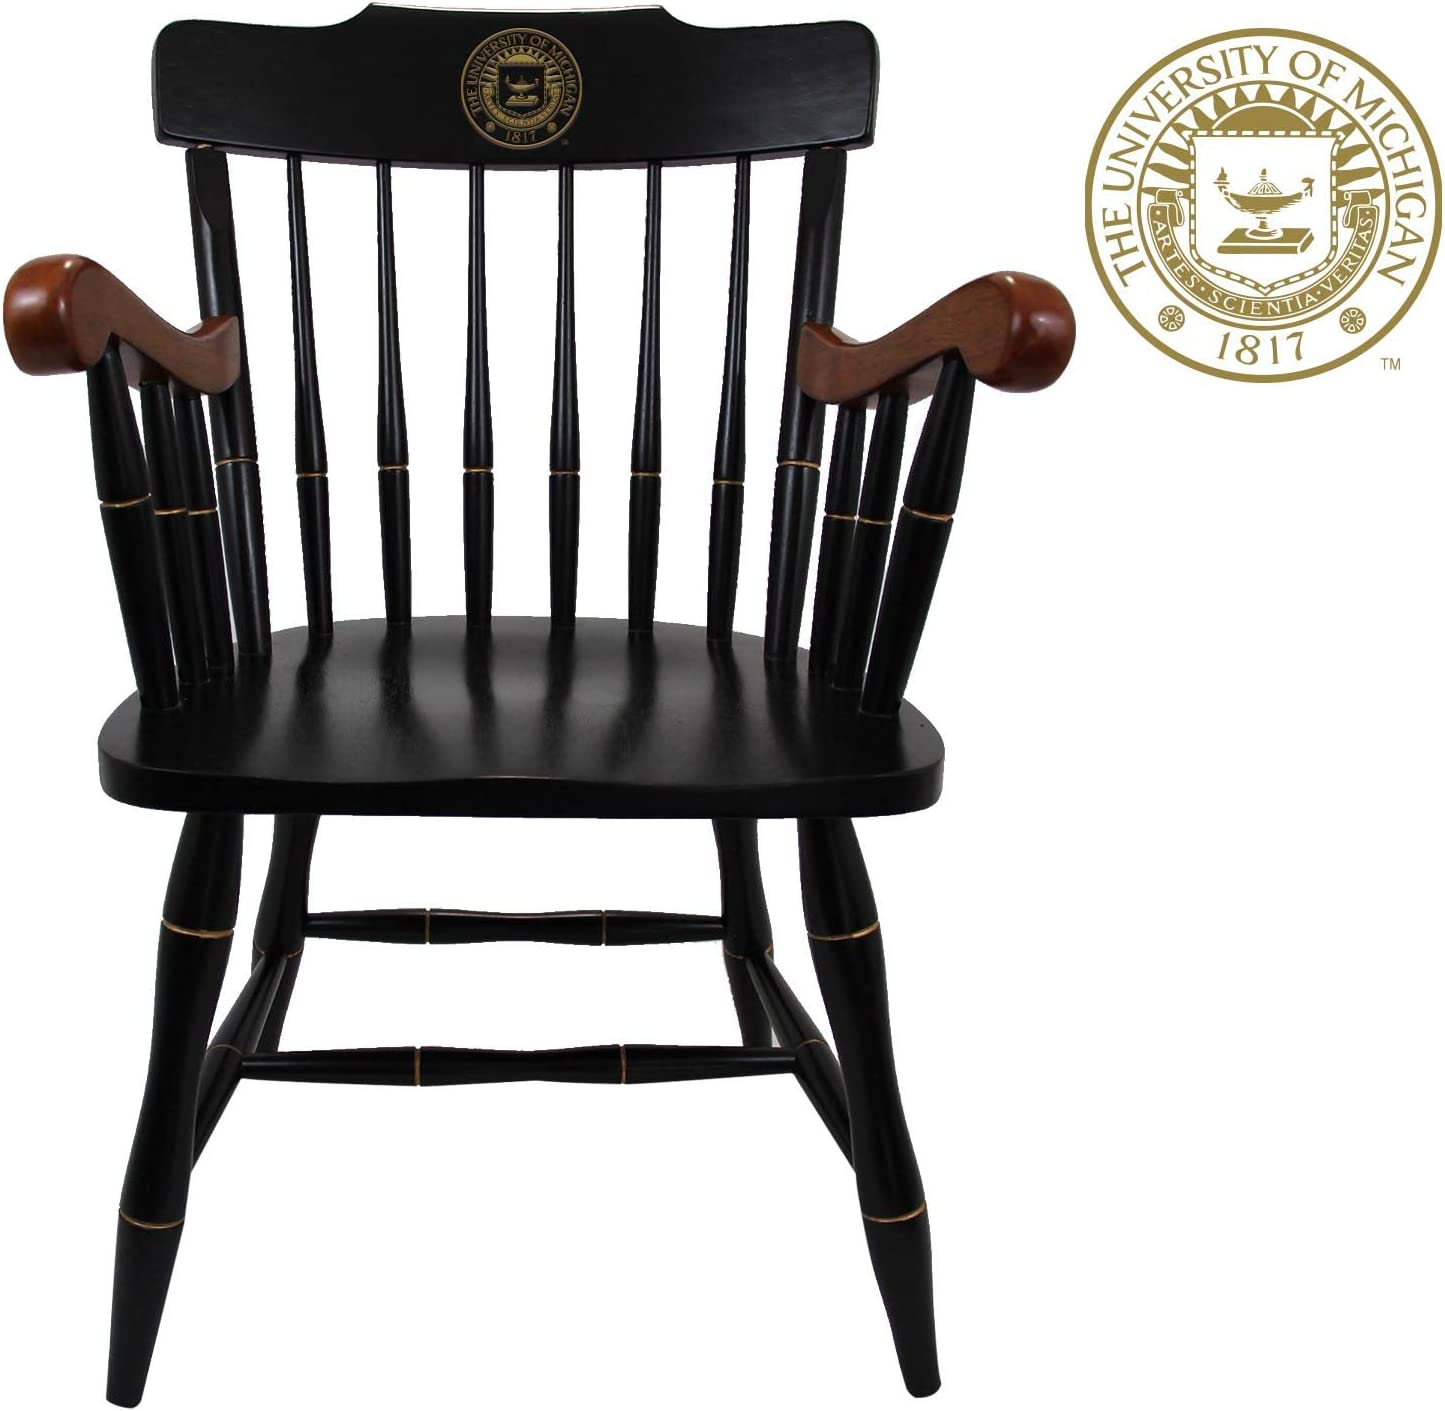 Michigan Wolverines Captain's Office Desk Chair, Black Crown with Cherry Arms